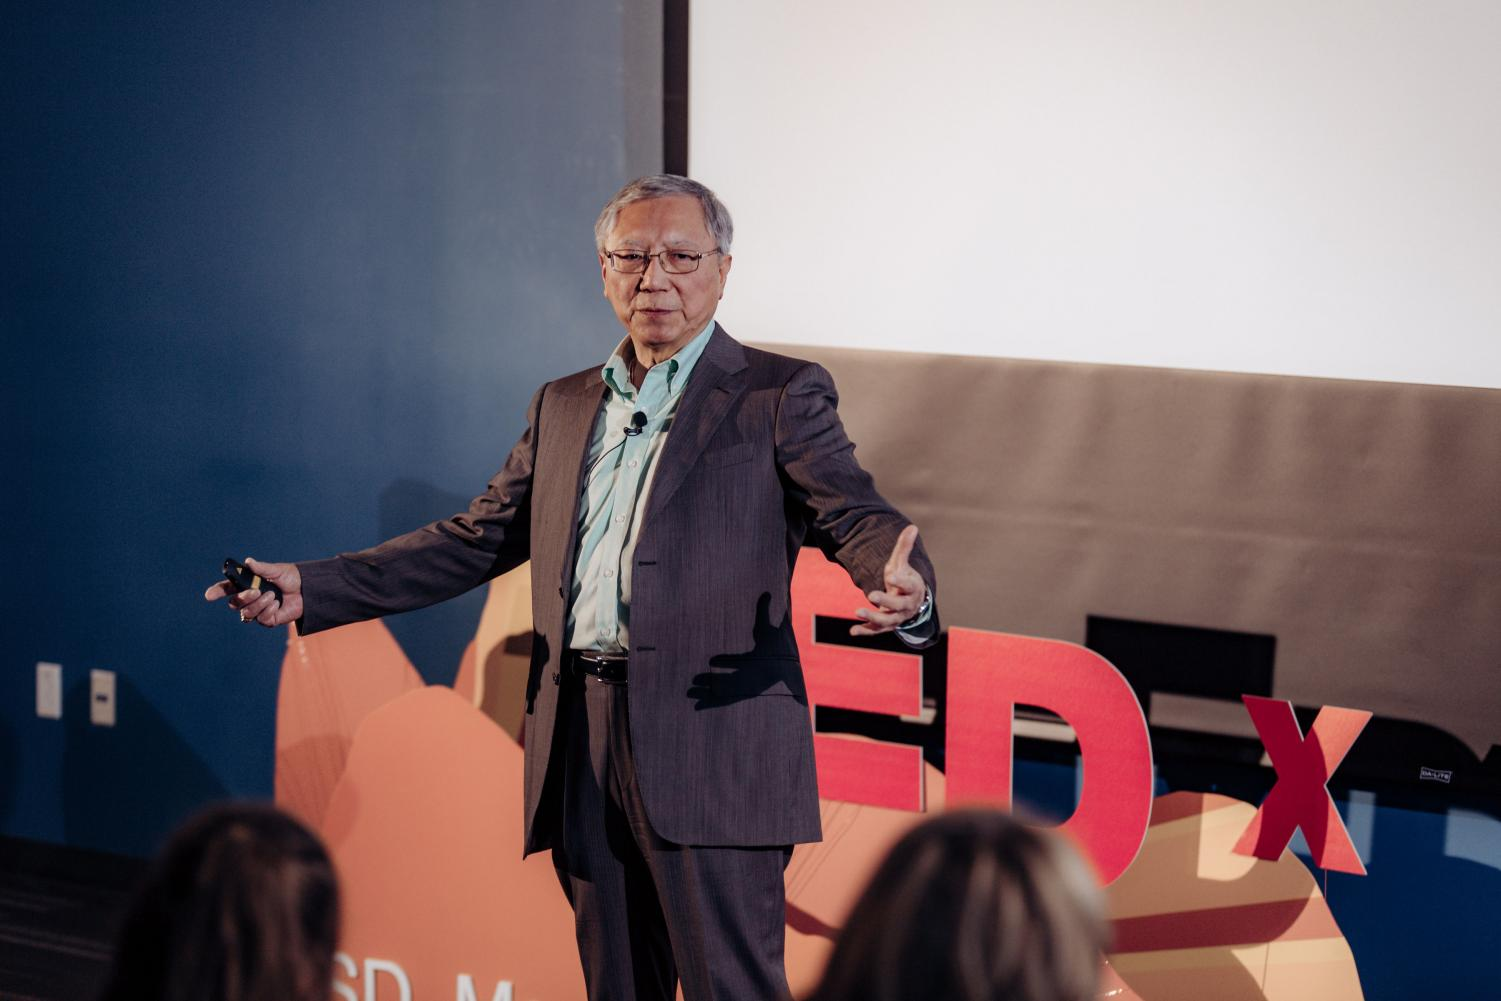 Albert Cruz giving his TEDx talk about